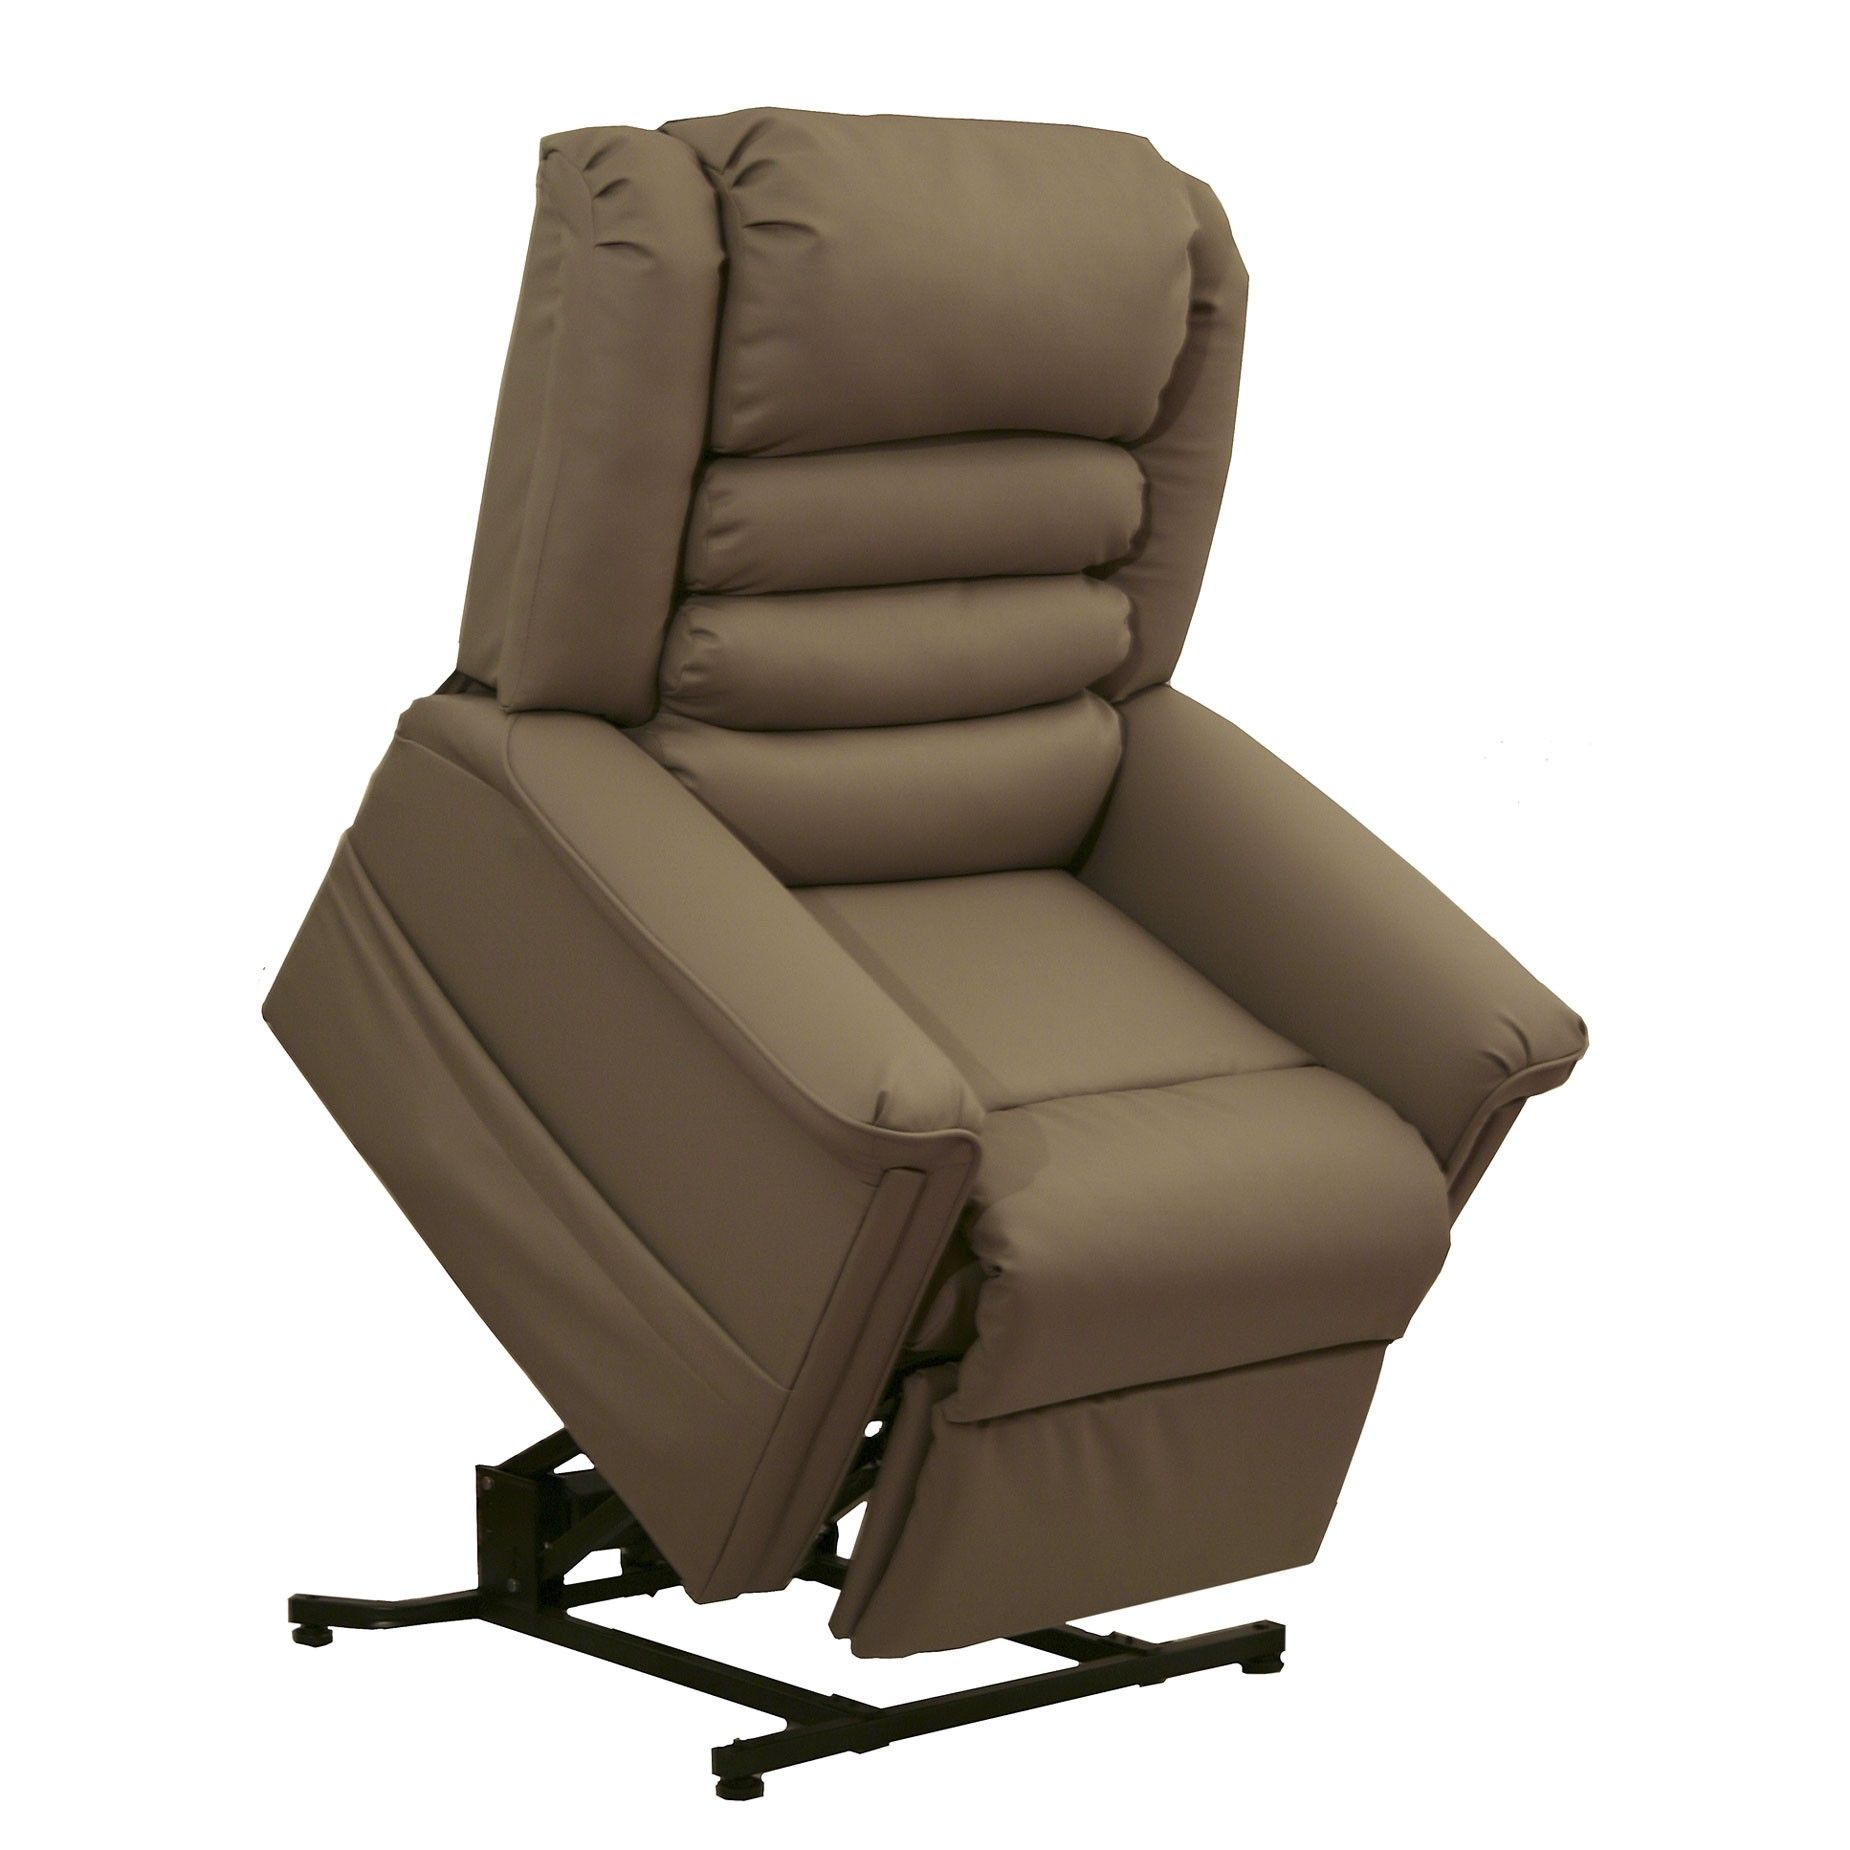 legrest hospital pin recliner on sleeper with bed reclining chair casters lbs manual